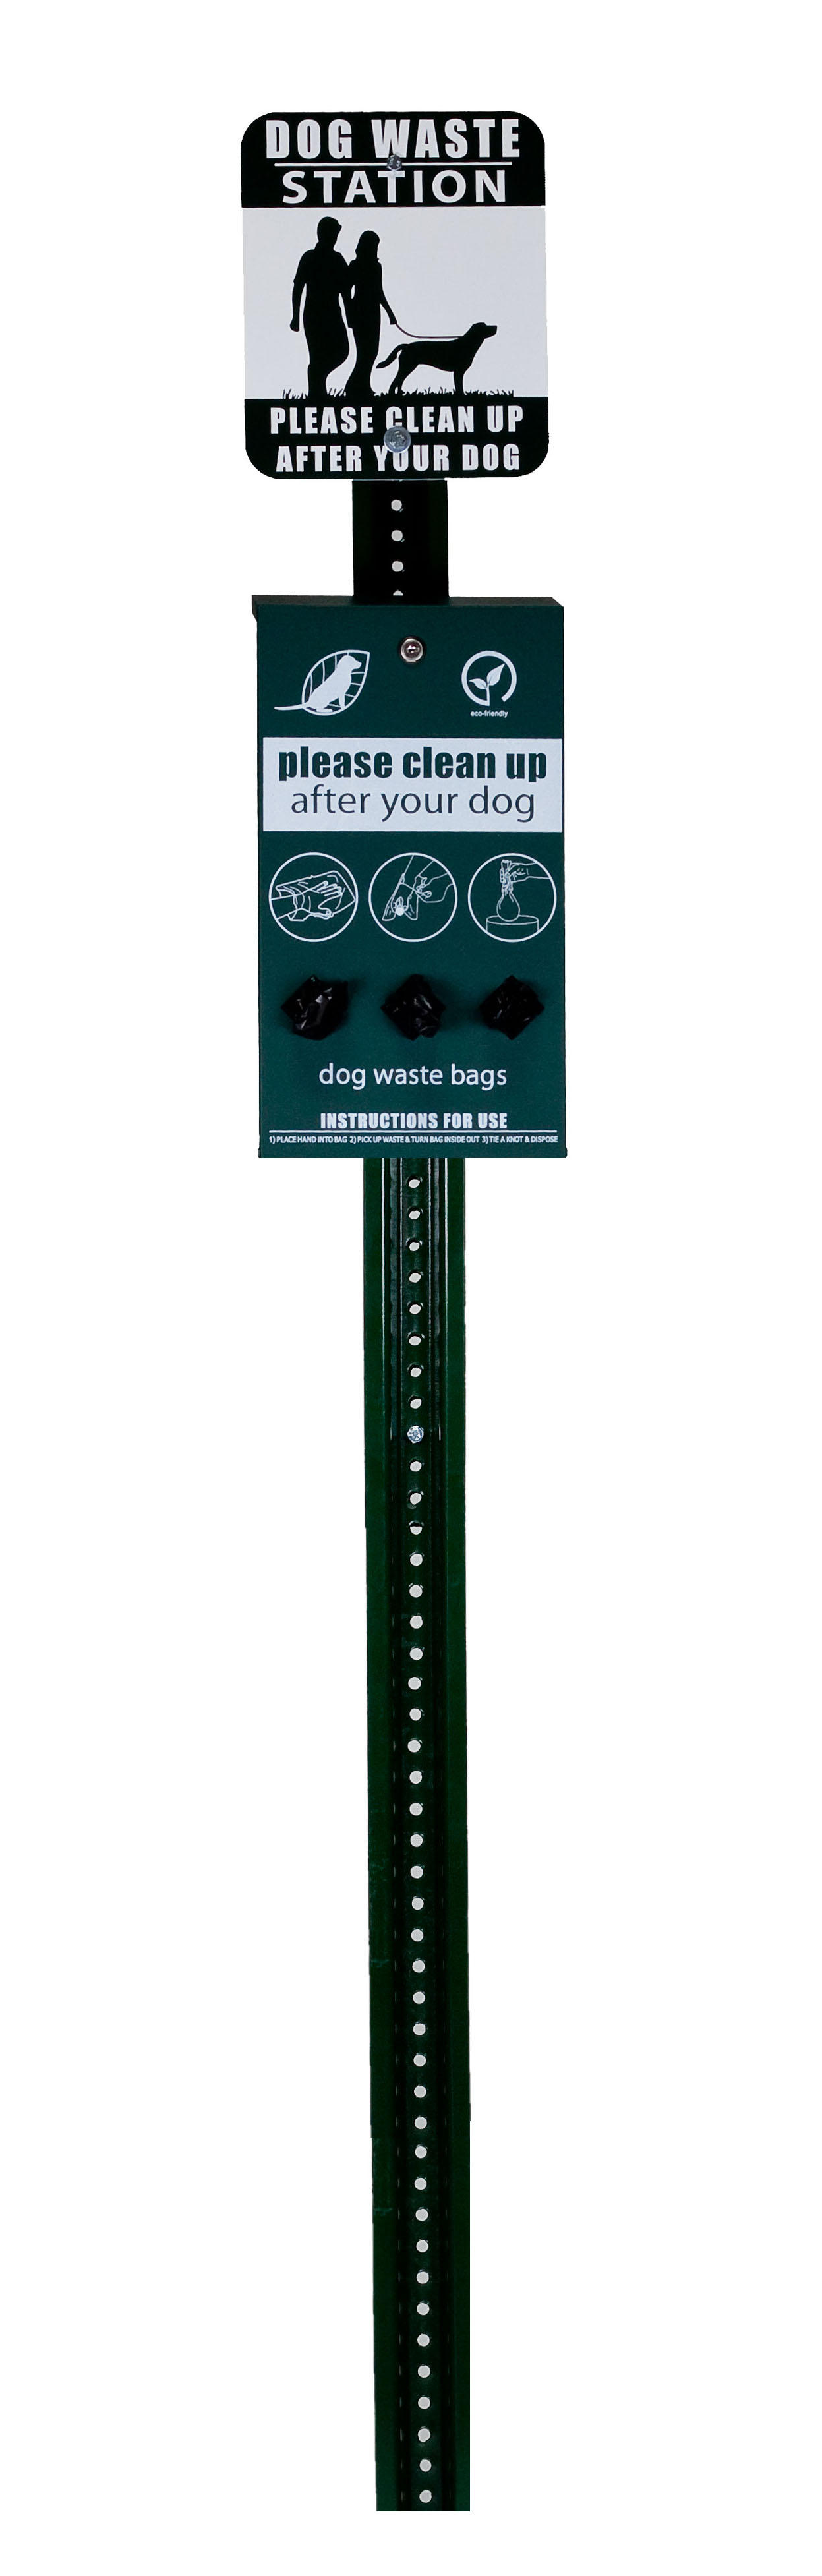 D007_mini-dogwastestation-rollbag.jpg